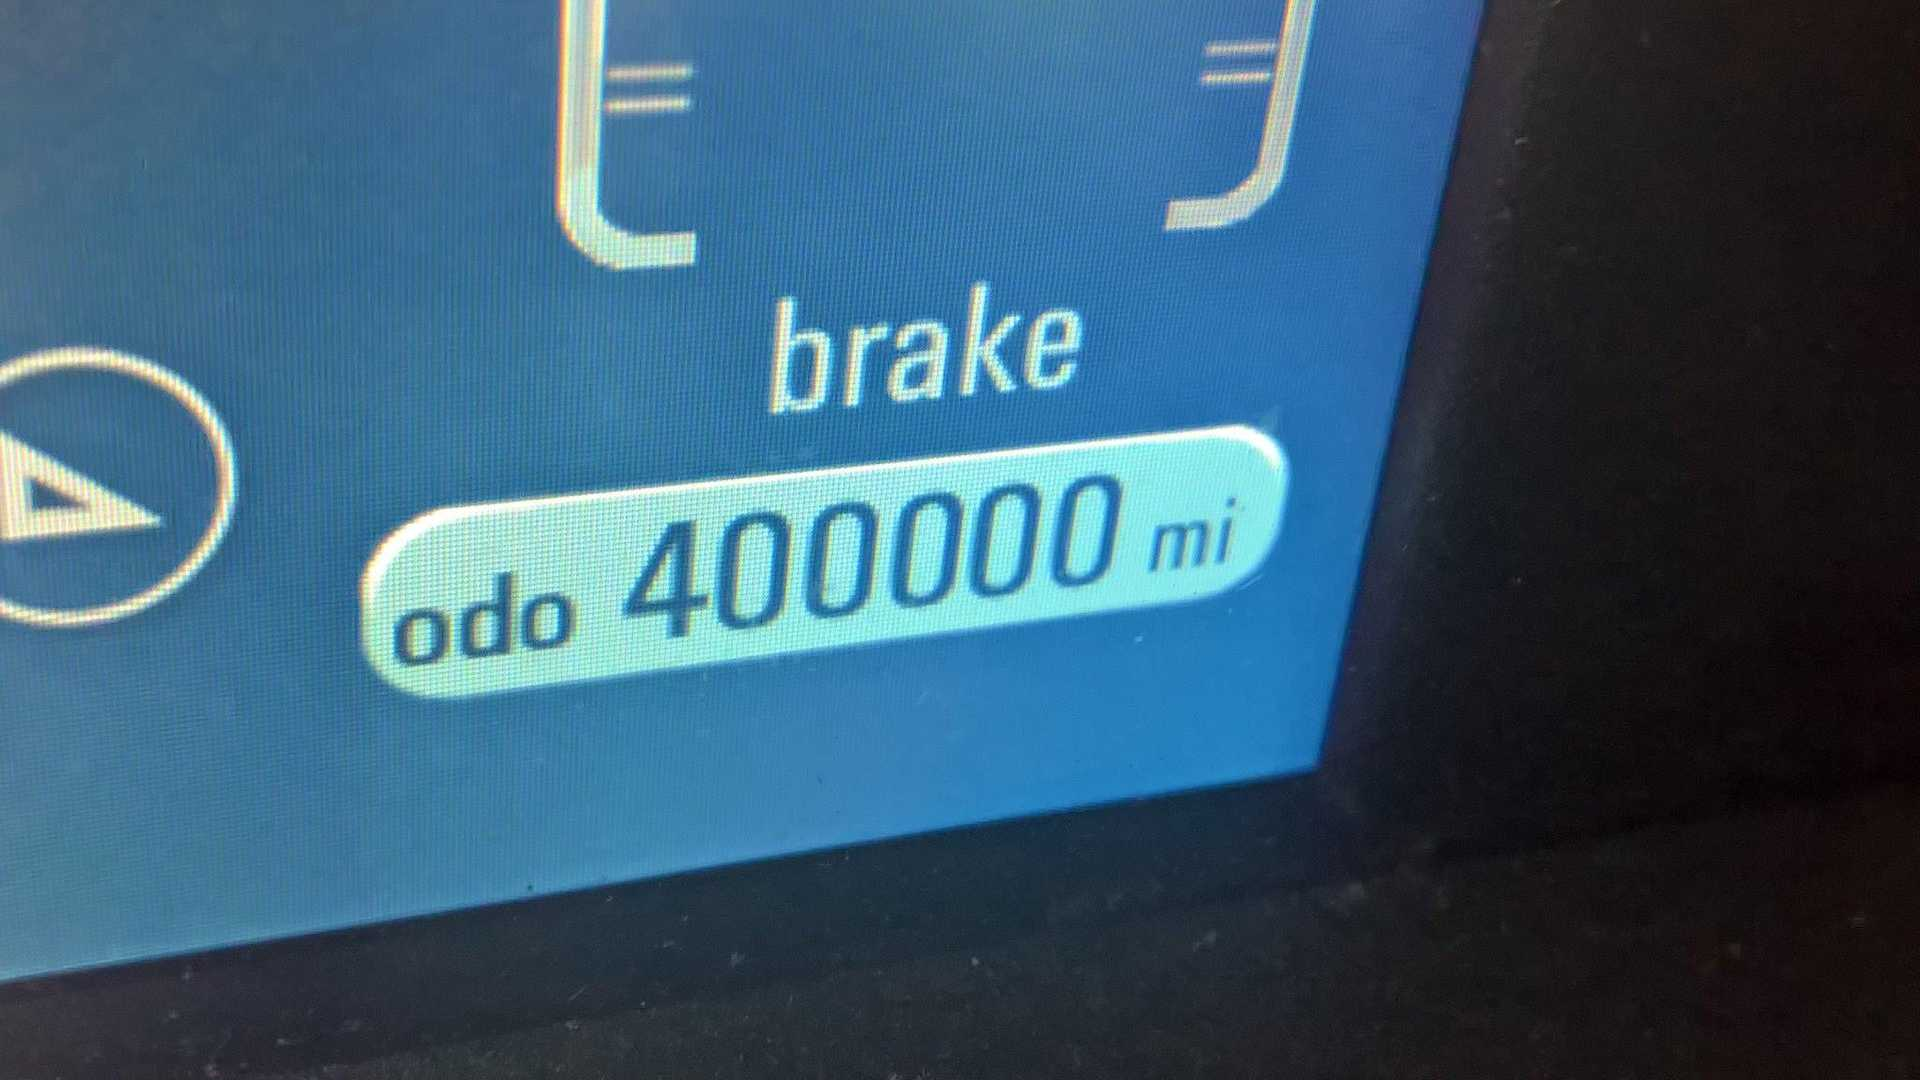 This Chevy Volt Has 400 000 Miles On Odometer With No Noticeable Battery Degradation